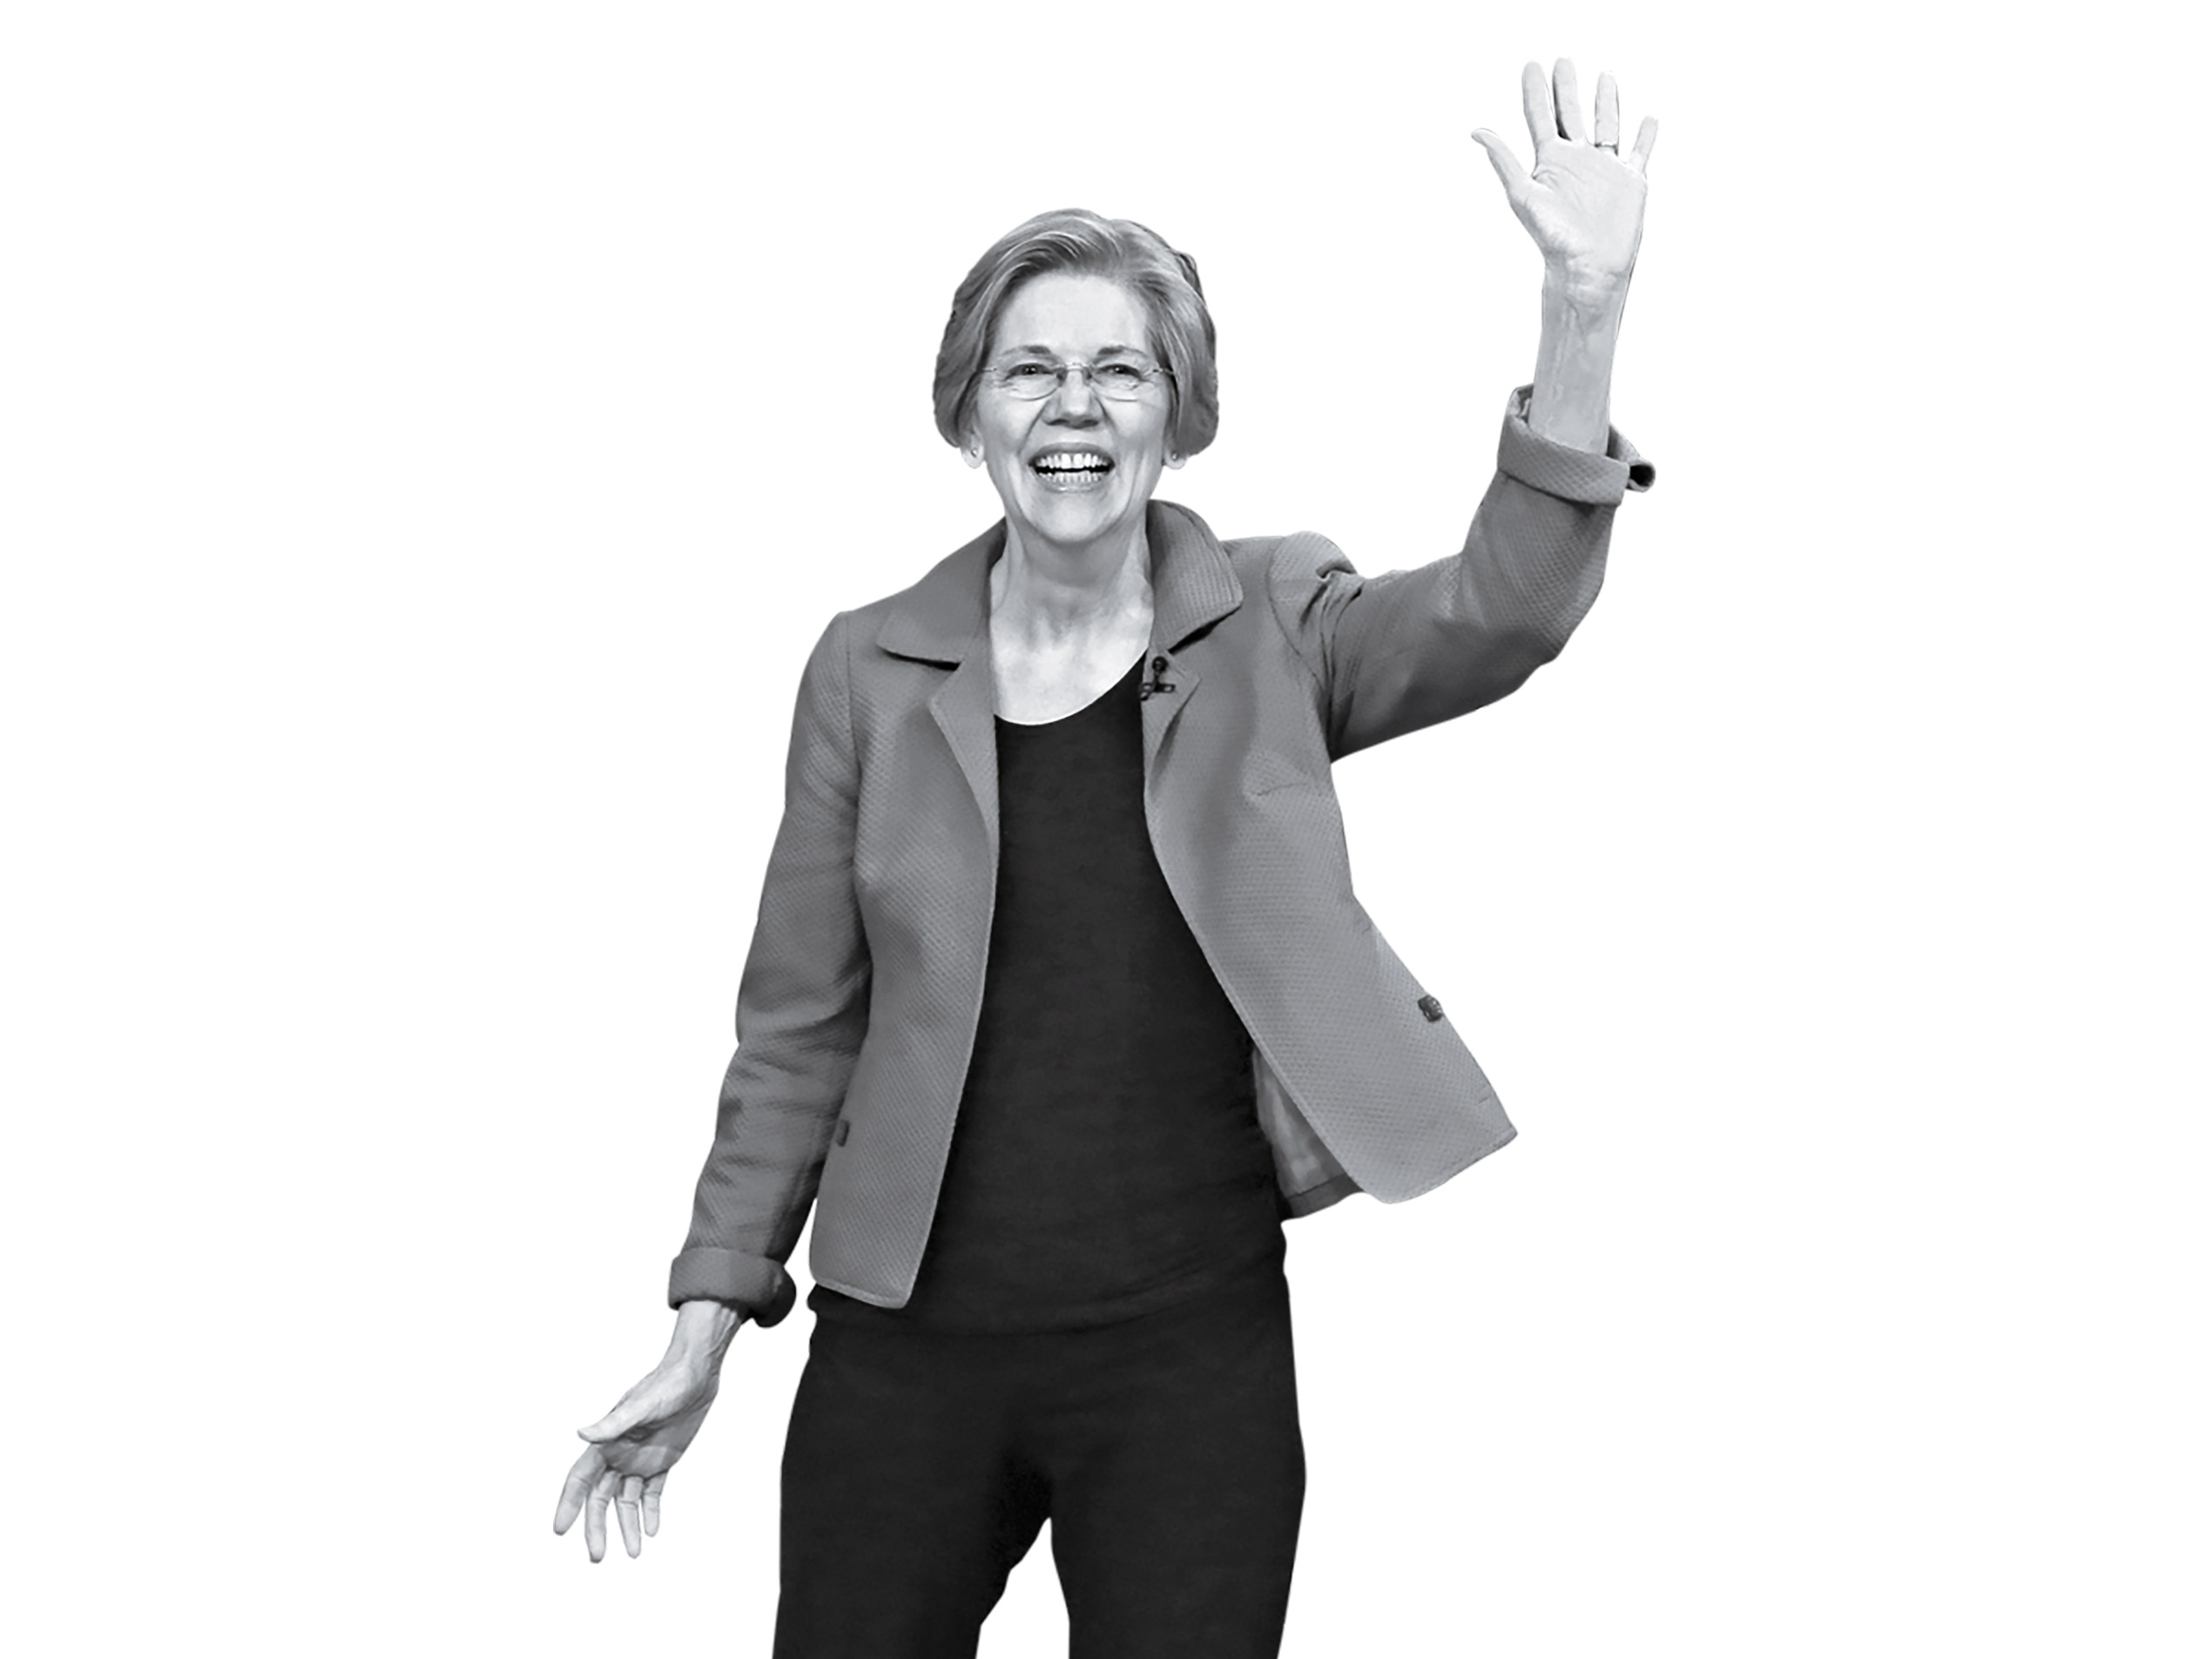 Senator Elizabeth Warren arrives at The Tonight Show Starring Jimmy Fallon on April 18, 2017.